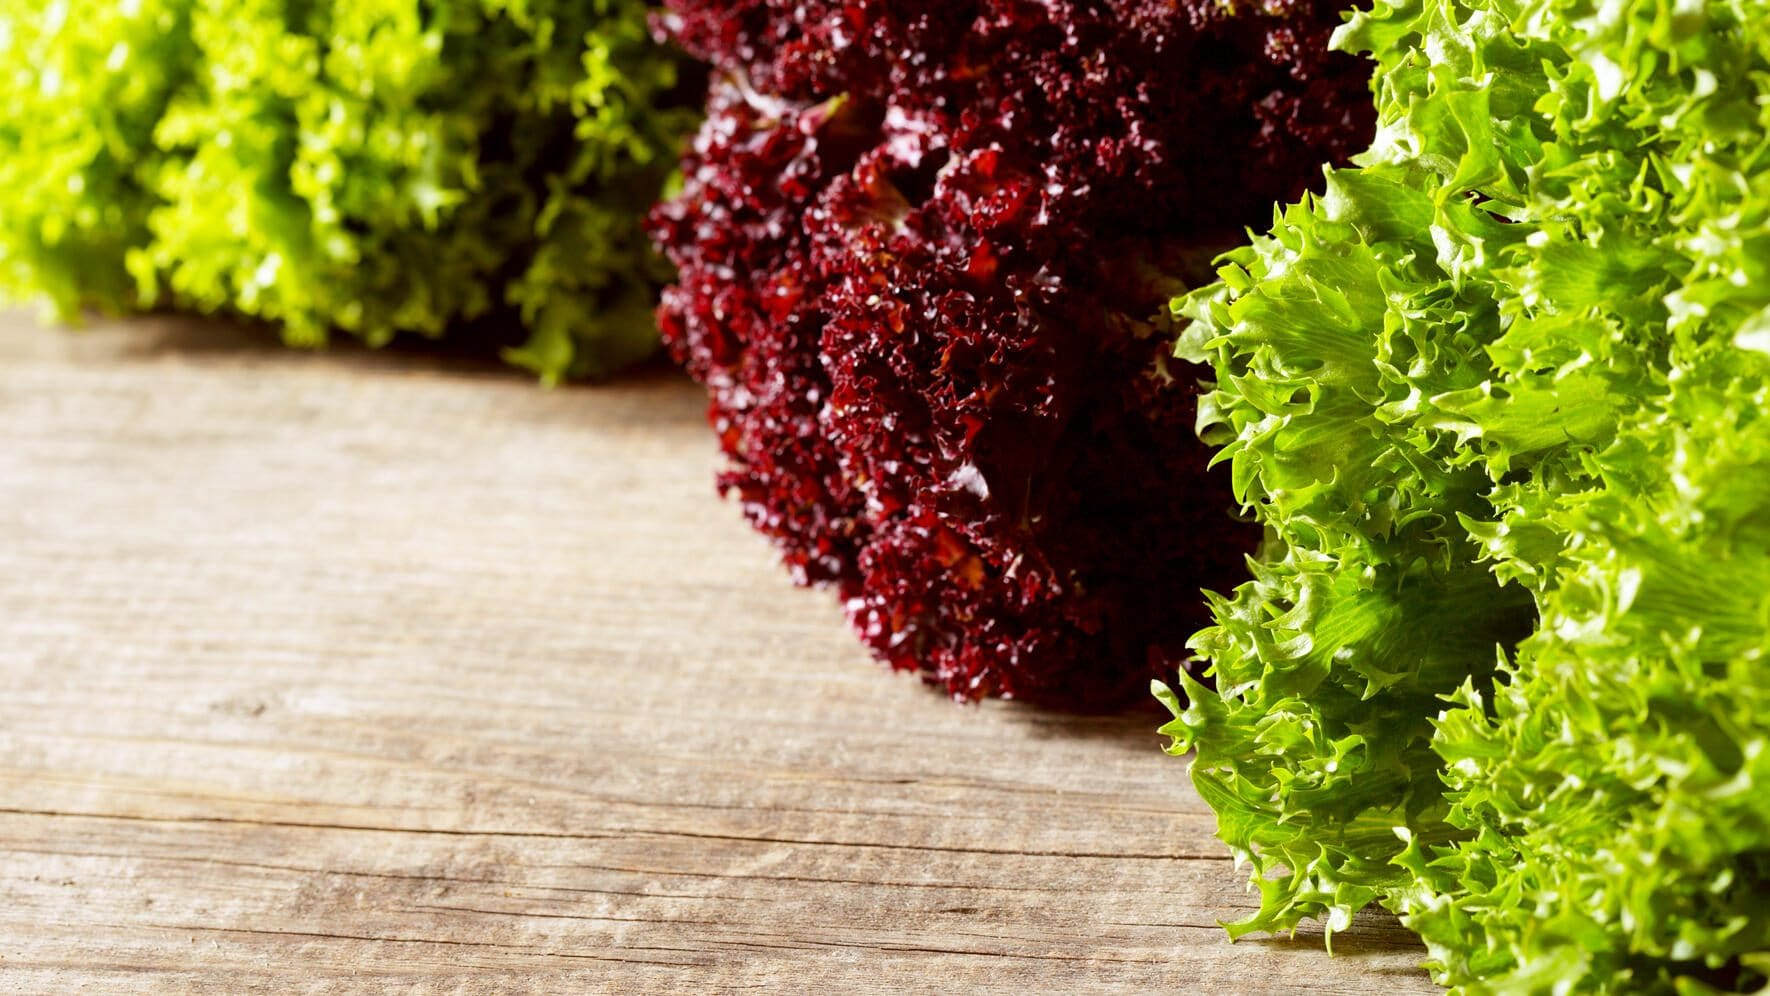 Lollo Rosso and Lollo Bianco lettuce on wooden table. Shallow depth of field.